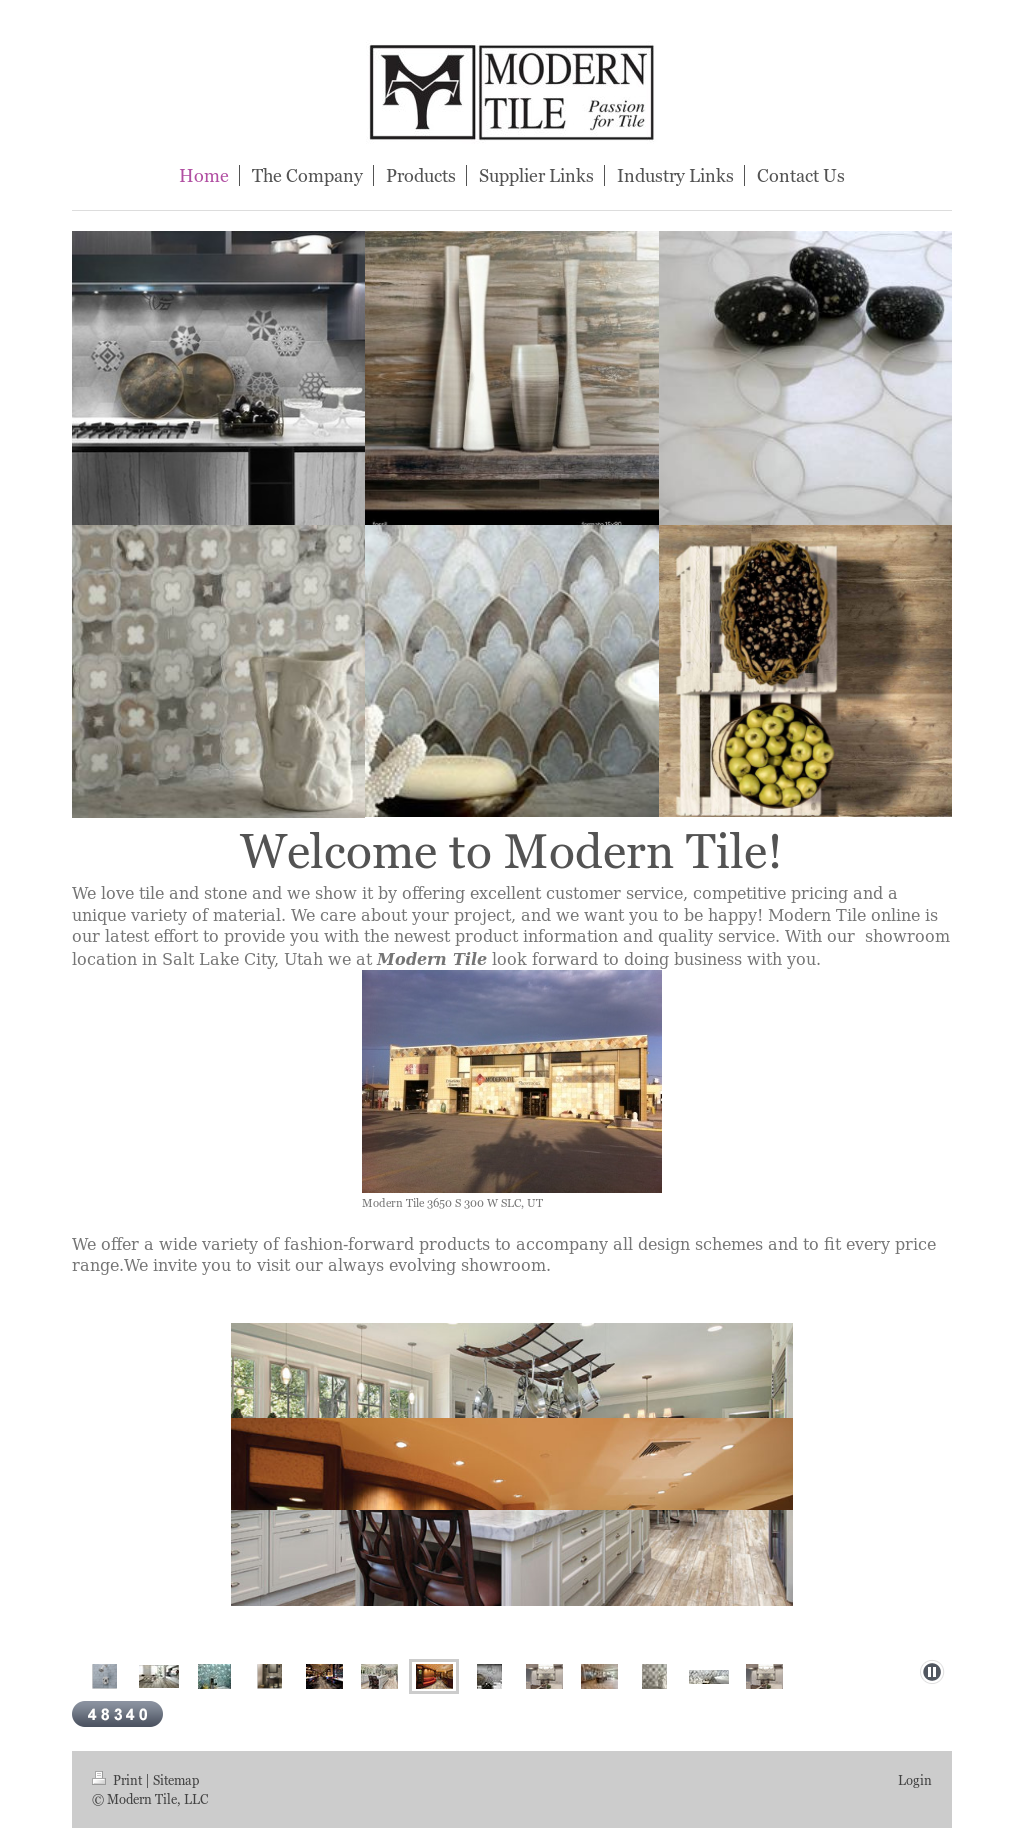 Modern Tile Compeors Revenue And